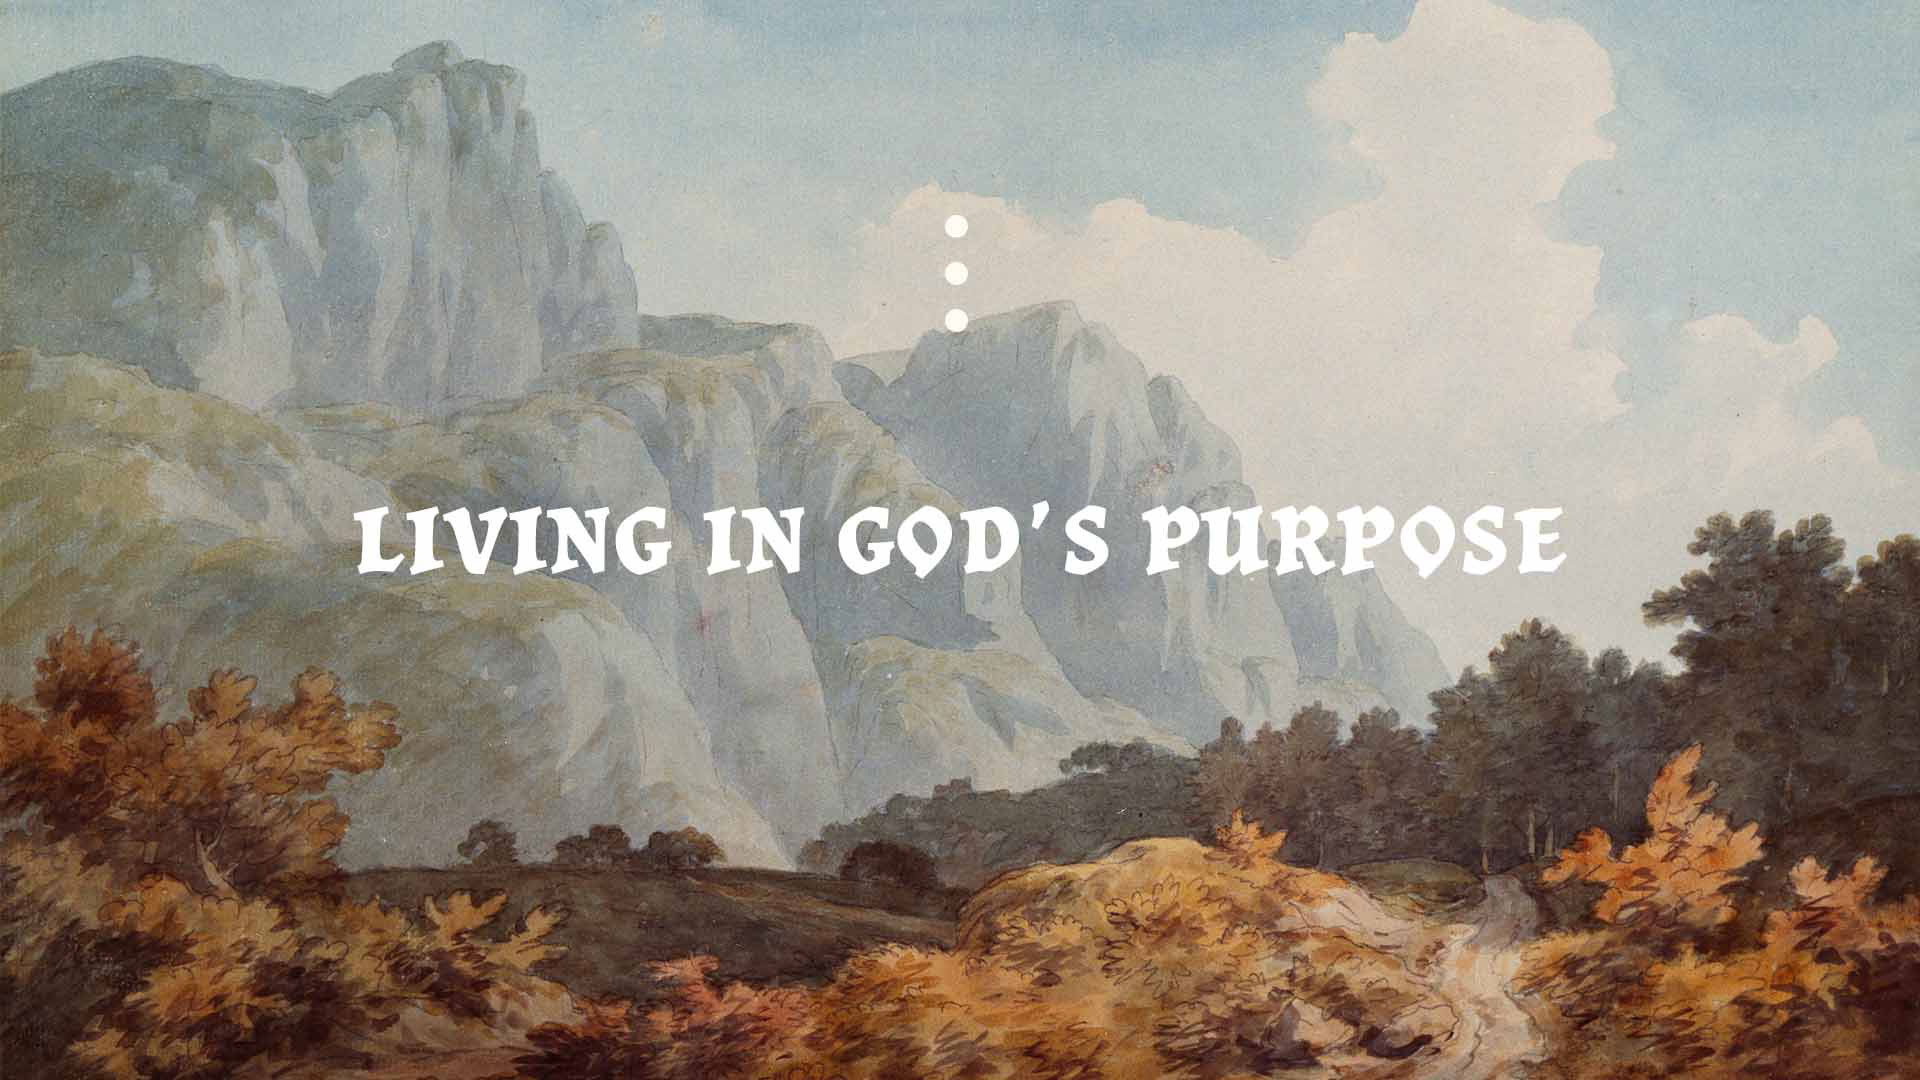 Series: Walking in the Purpose of God